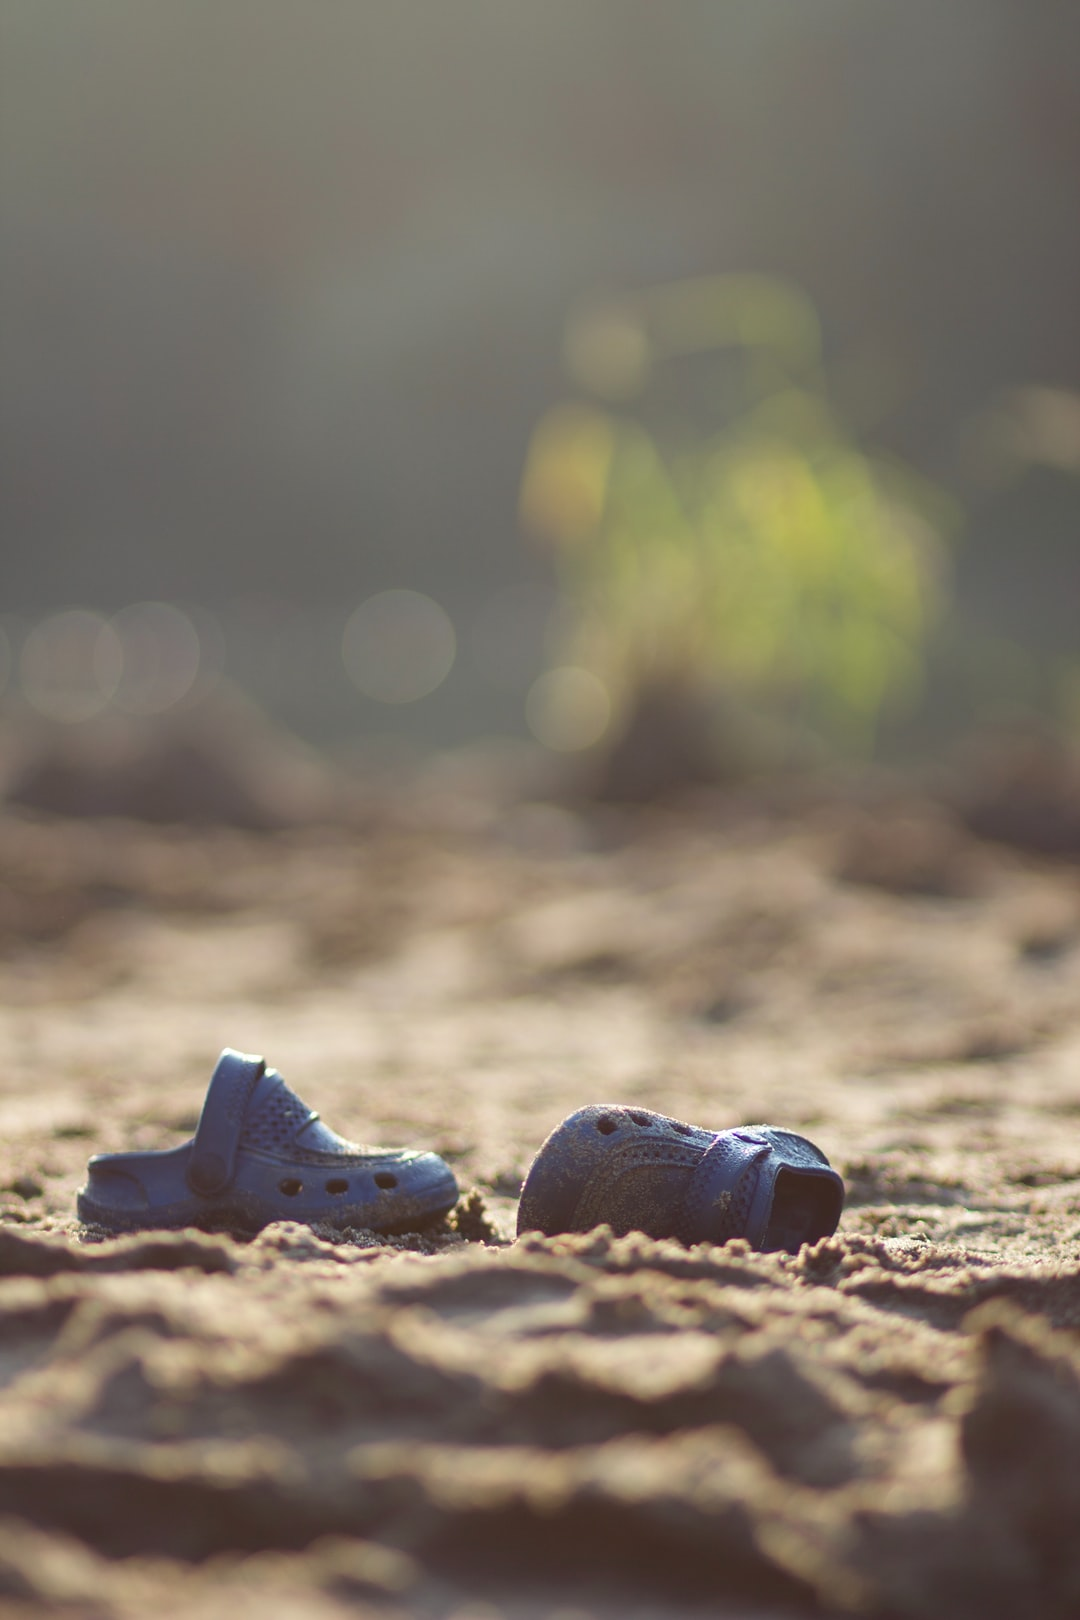 Early in the morning, I wandered along the sandy beach of Tisza near to Tivadar when I bumped into these small plastic sandals. Most probably the owner left them there during the night, hopefully, they found them later the day.